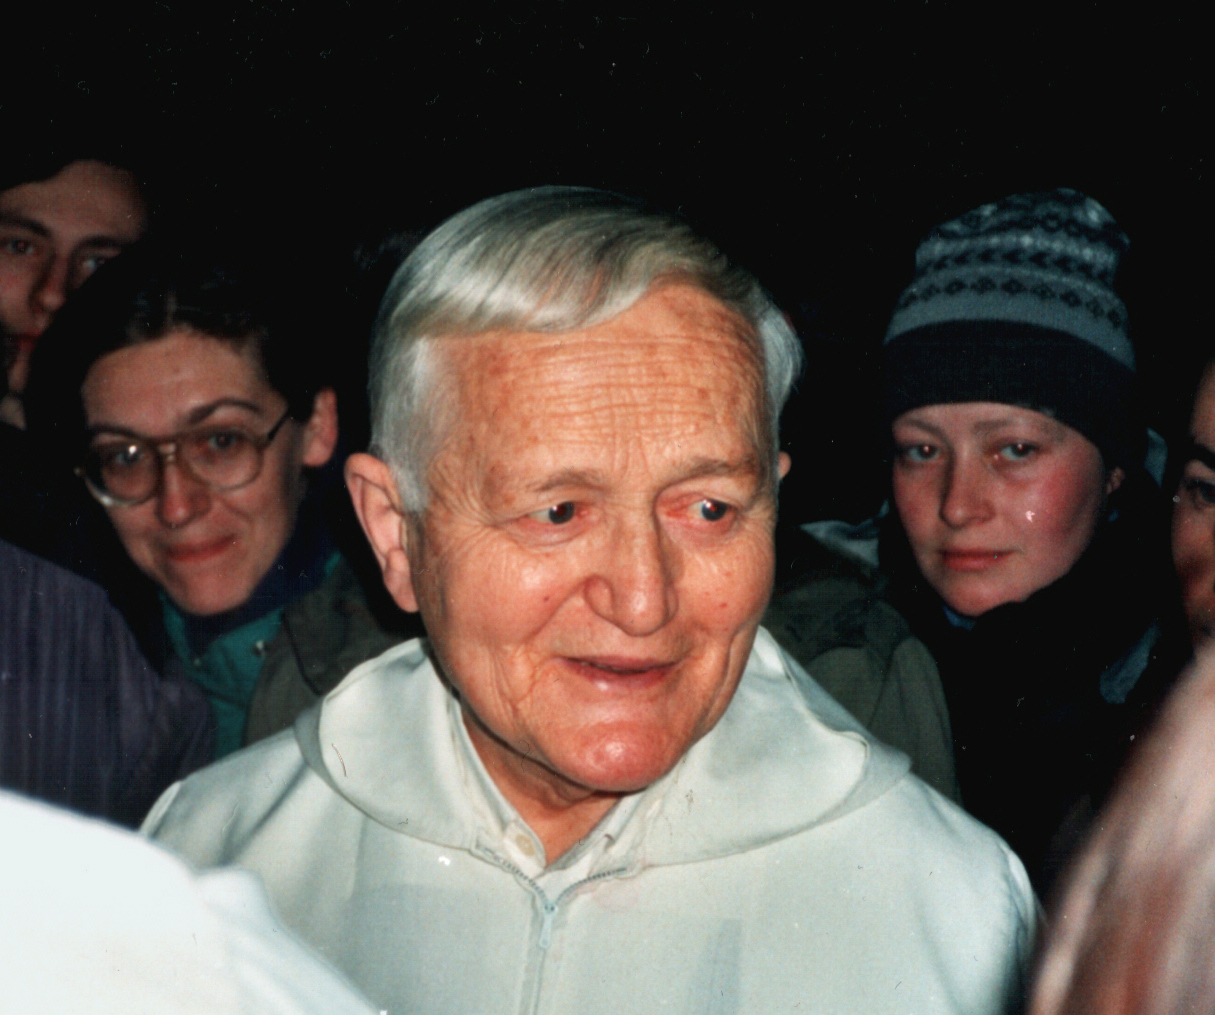 Frère Roger Schutz of Taizé at 1991-92 New Year European Meeting in Budapest